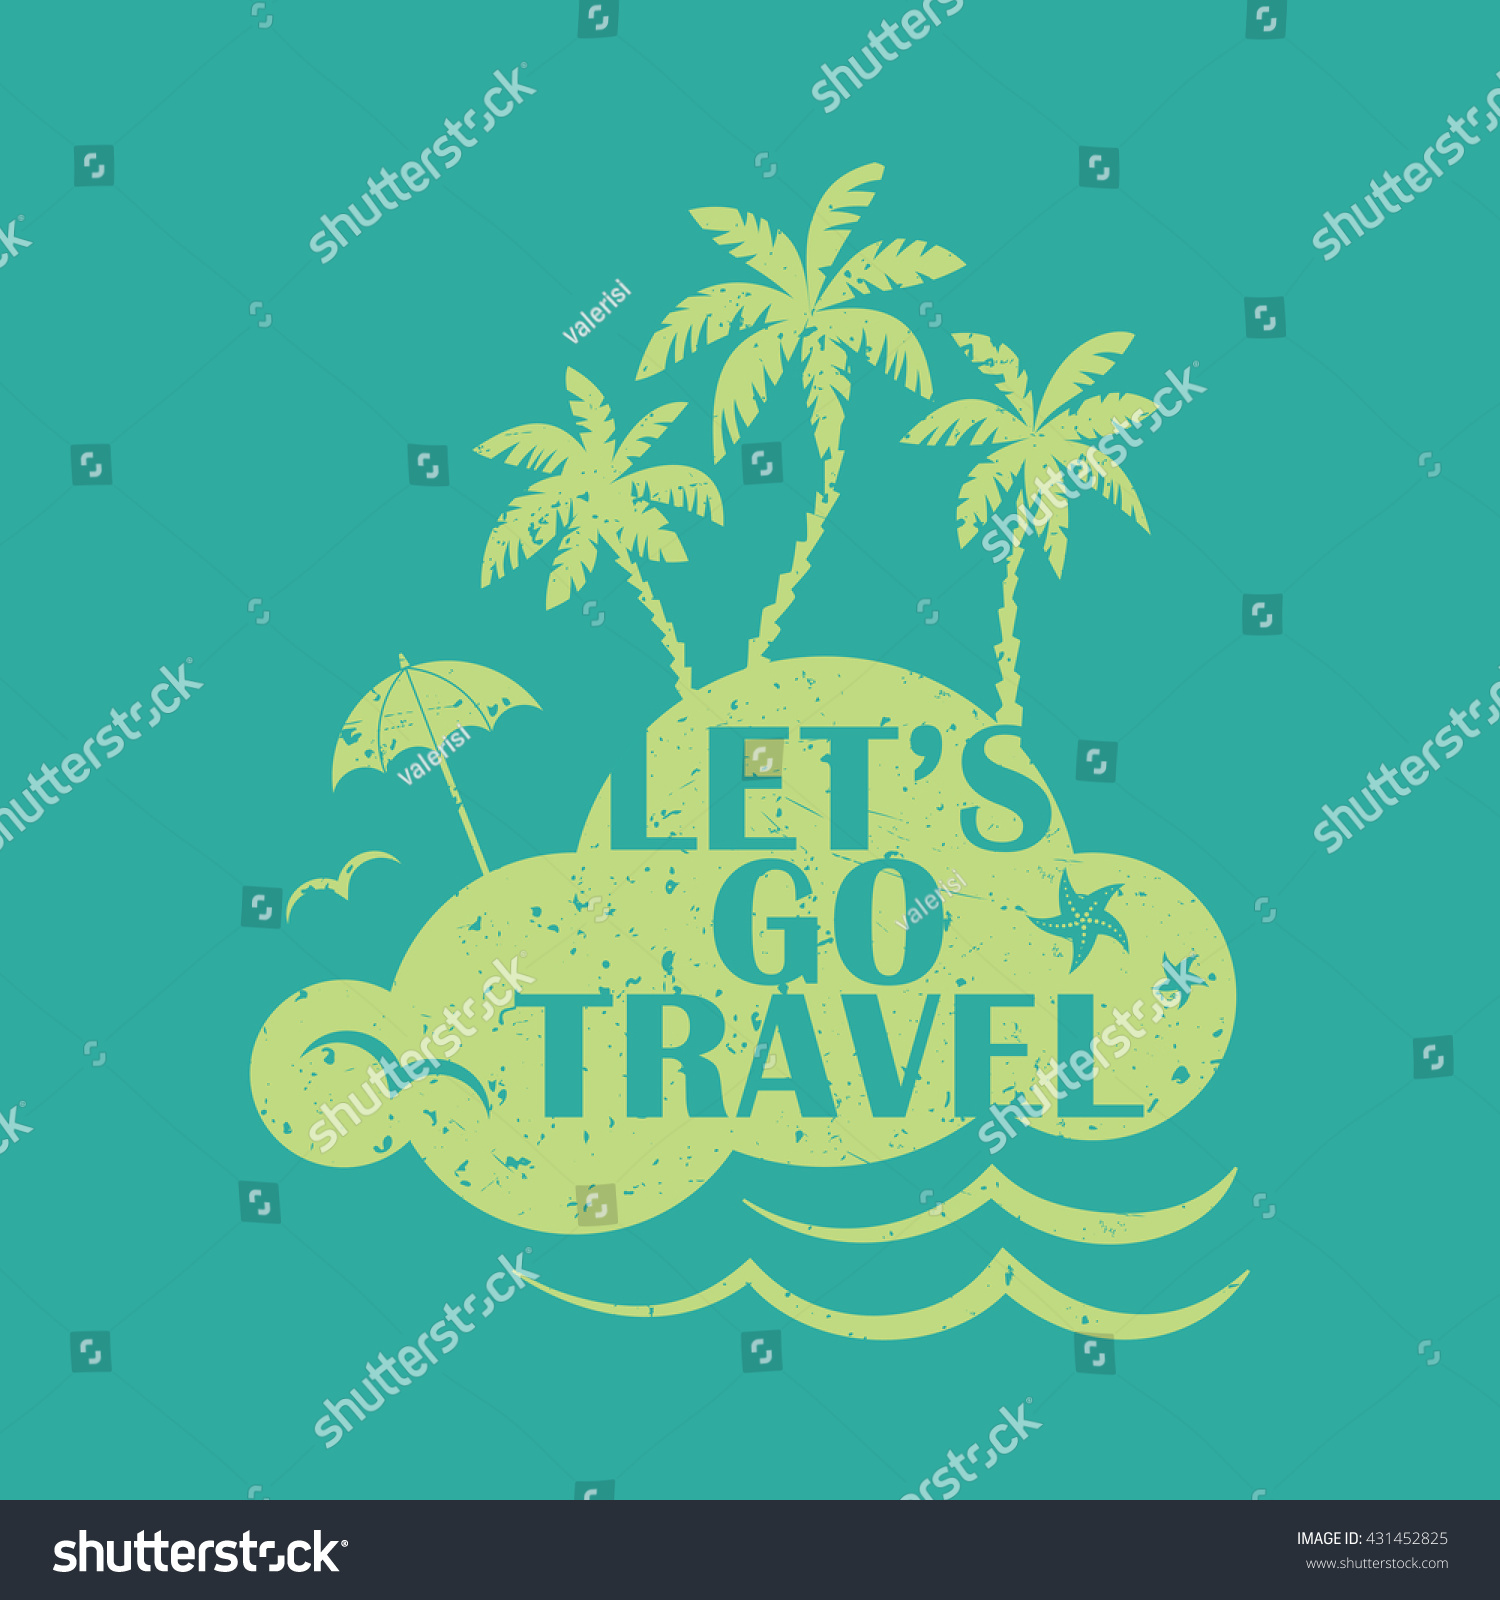 Go Travel Vacations: Lets Go Travel. Vacations And Tourism Concept Vector